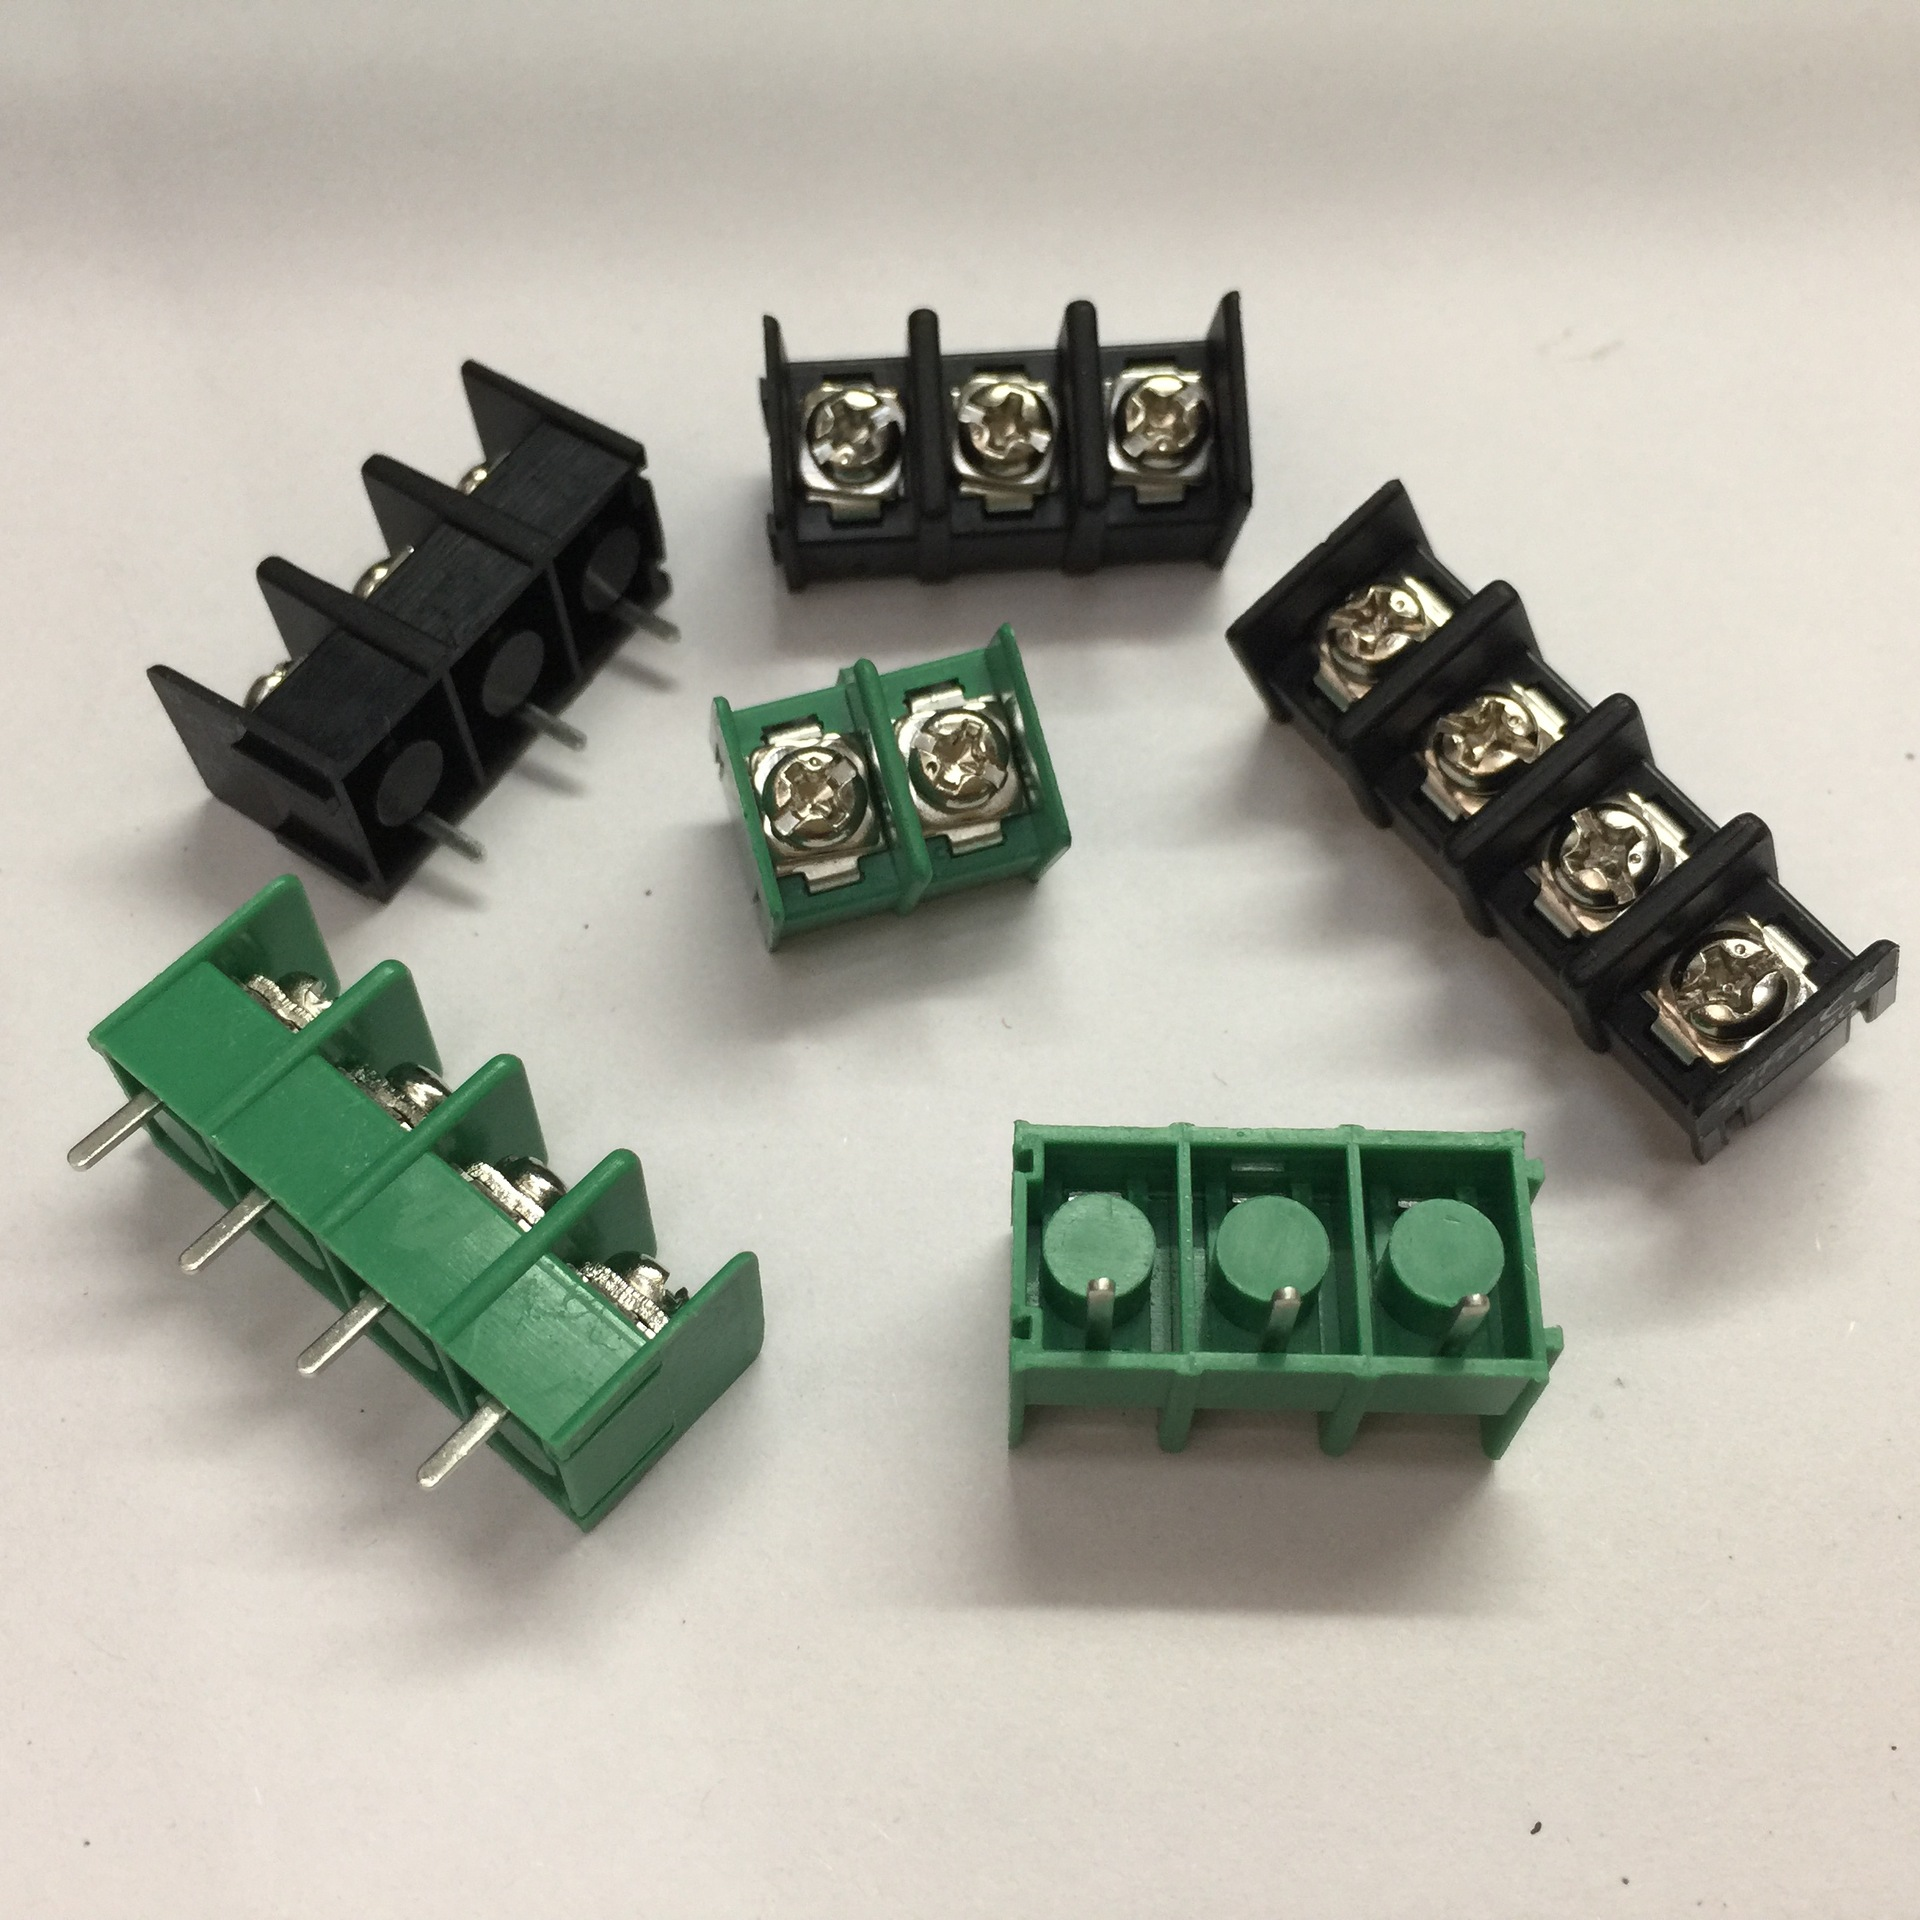 10 pcs 128-2P 2 Pin 5.0mm Pitch PCB Screw Terminal Block Connector 2 Positions